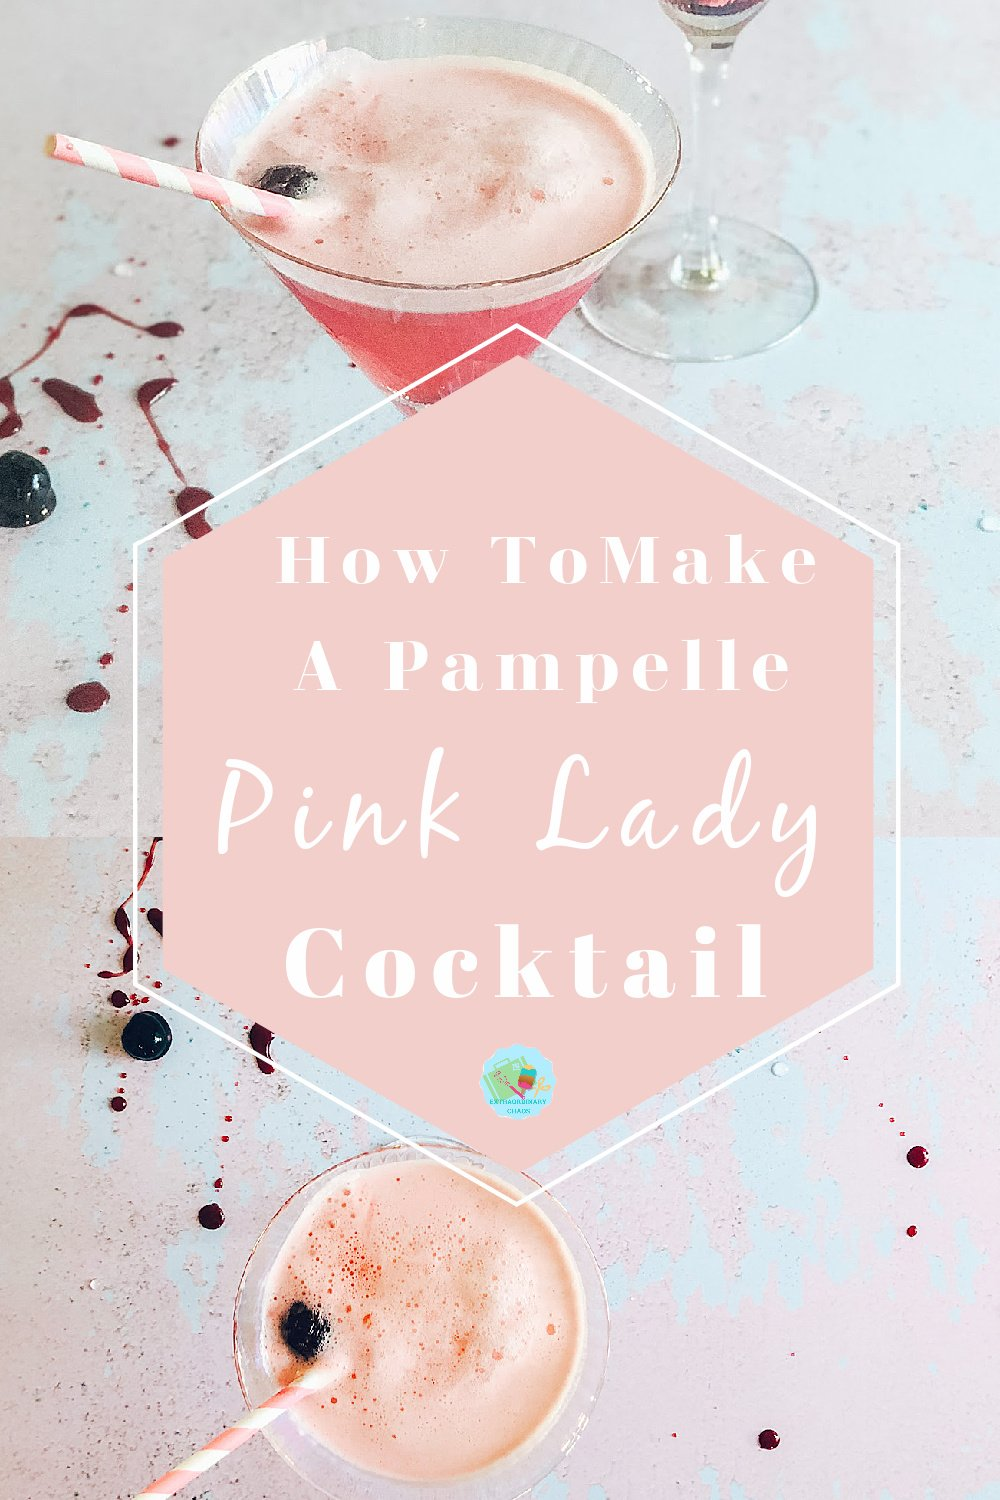 How to make a pink lady cocktail